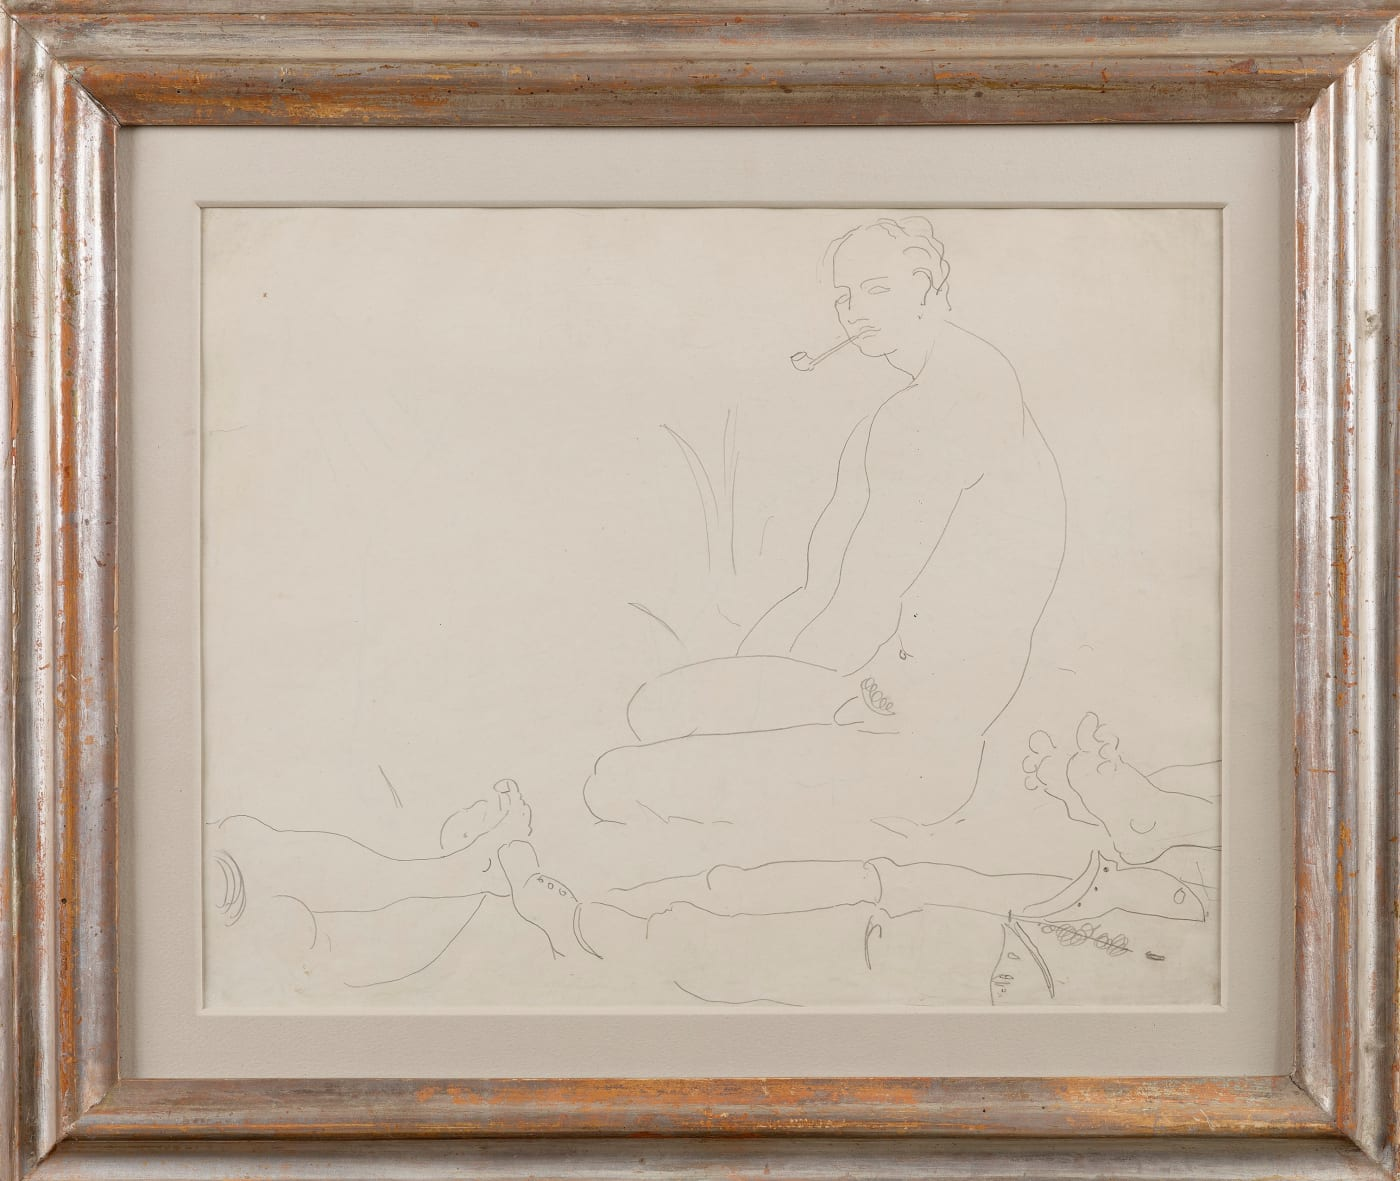 Drawing by Arthur Lett Haines, Cedric Morris smoking a pipe.